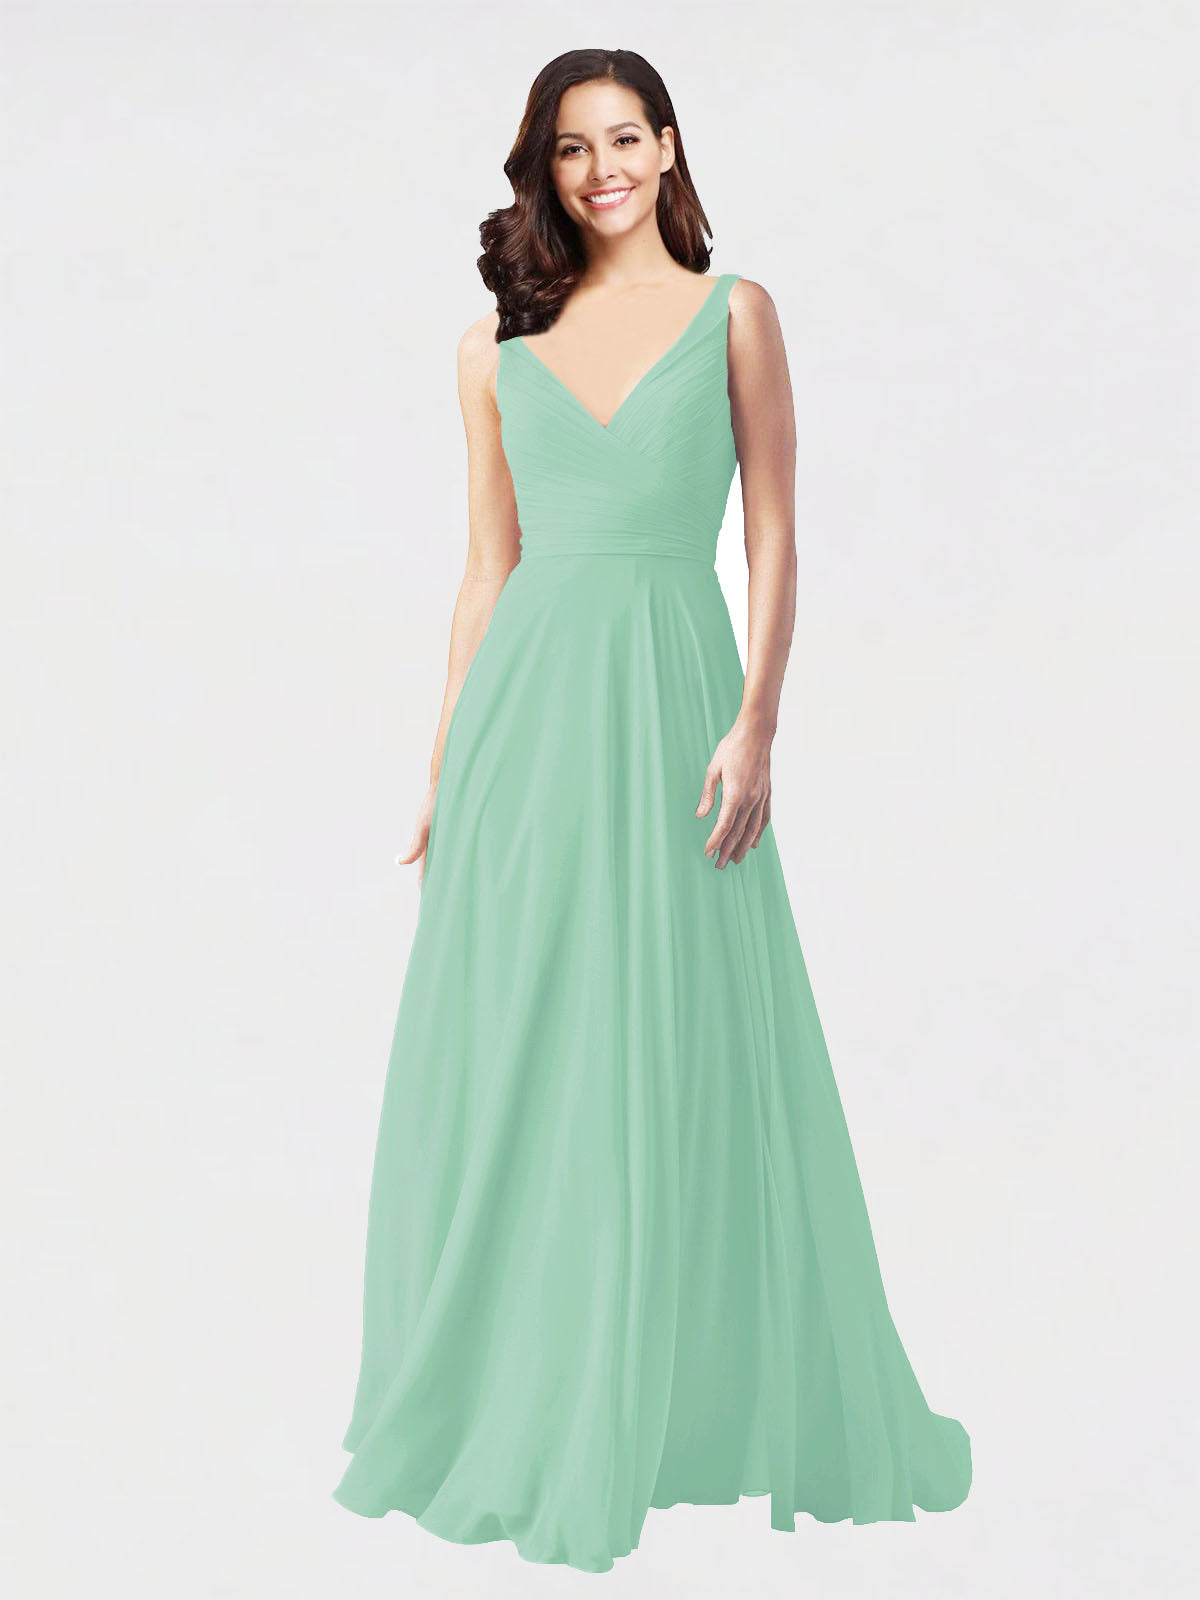 Long A-Line V-Neck Sleeveless Mint Green Chiffon Bridesmaid Dress Bernice